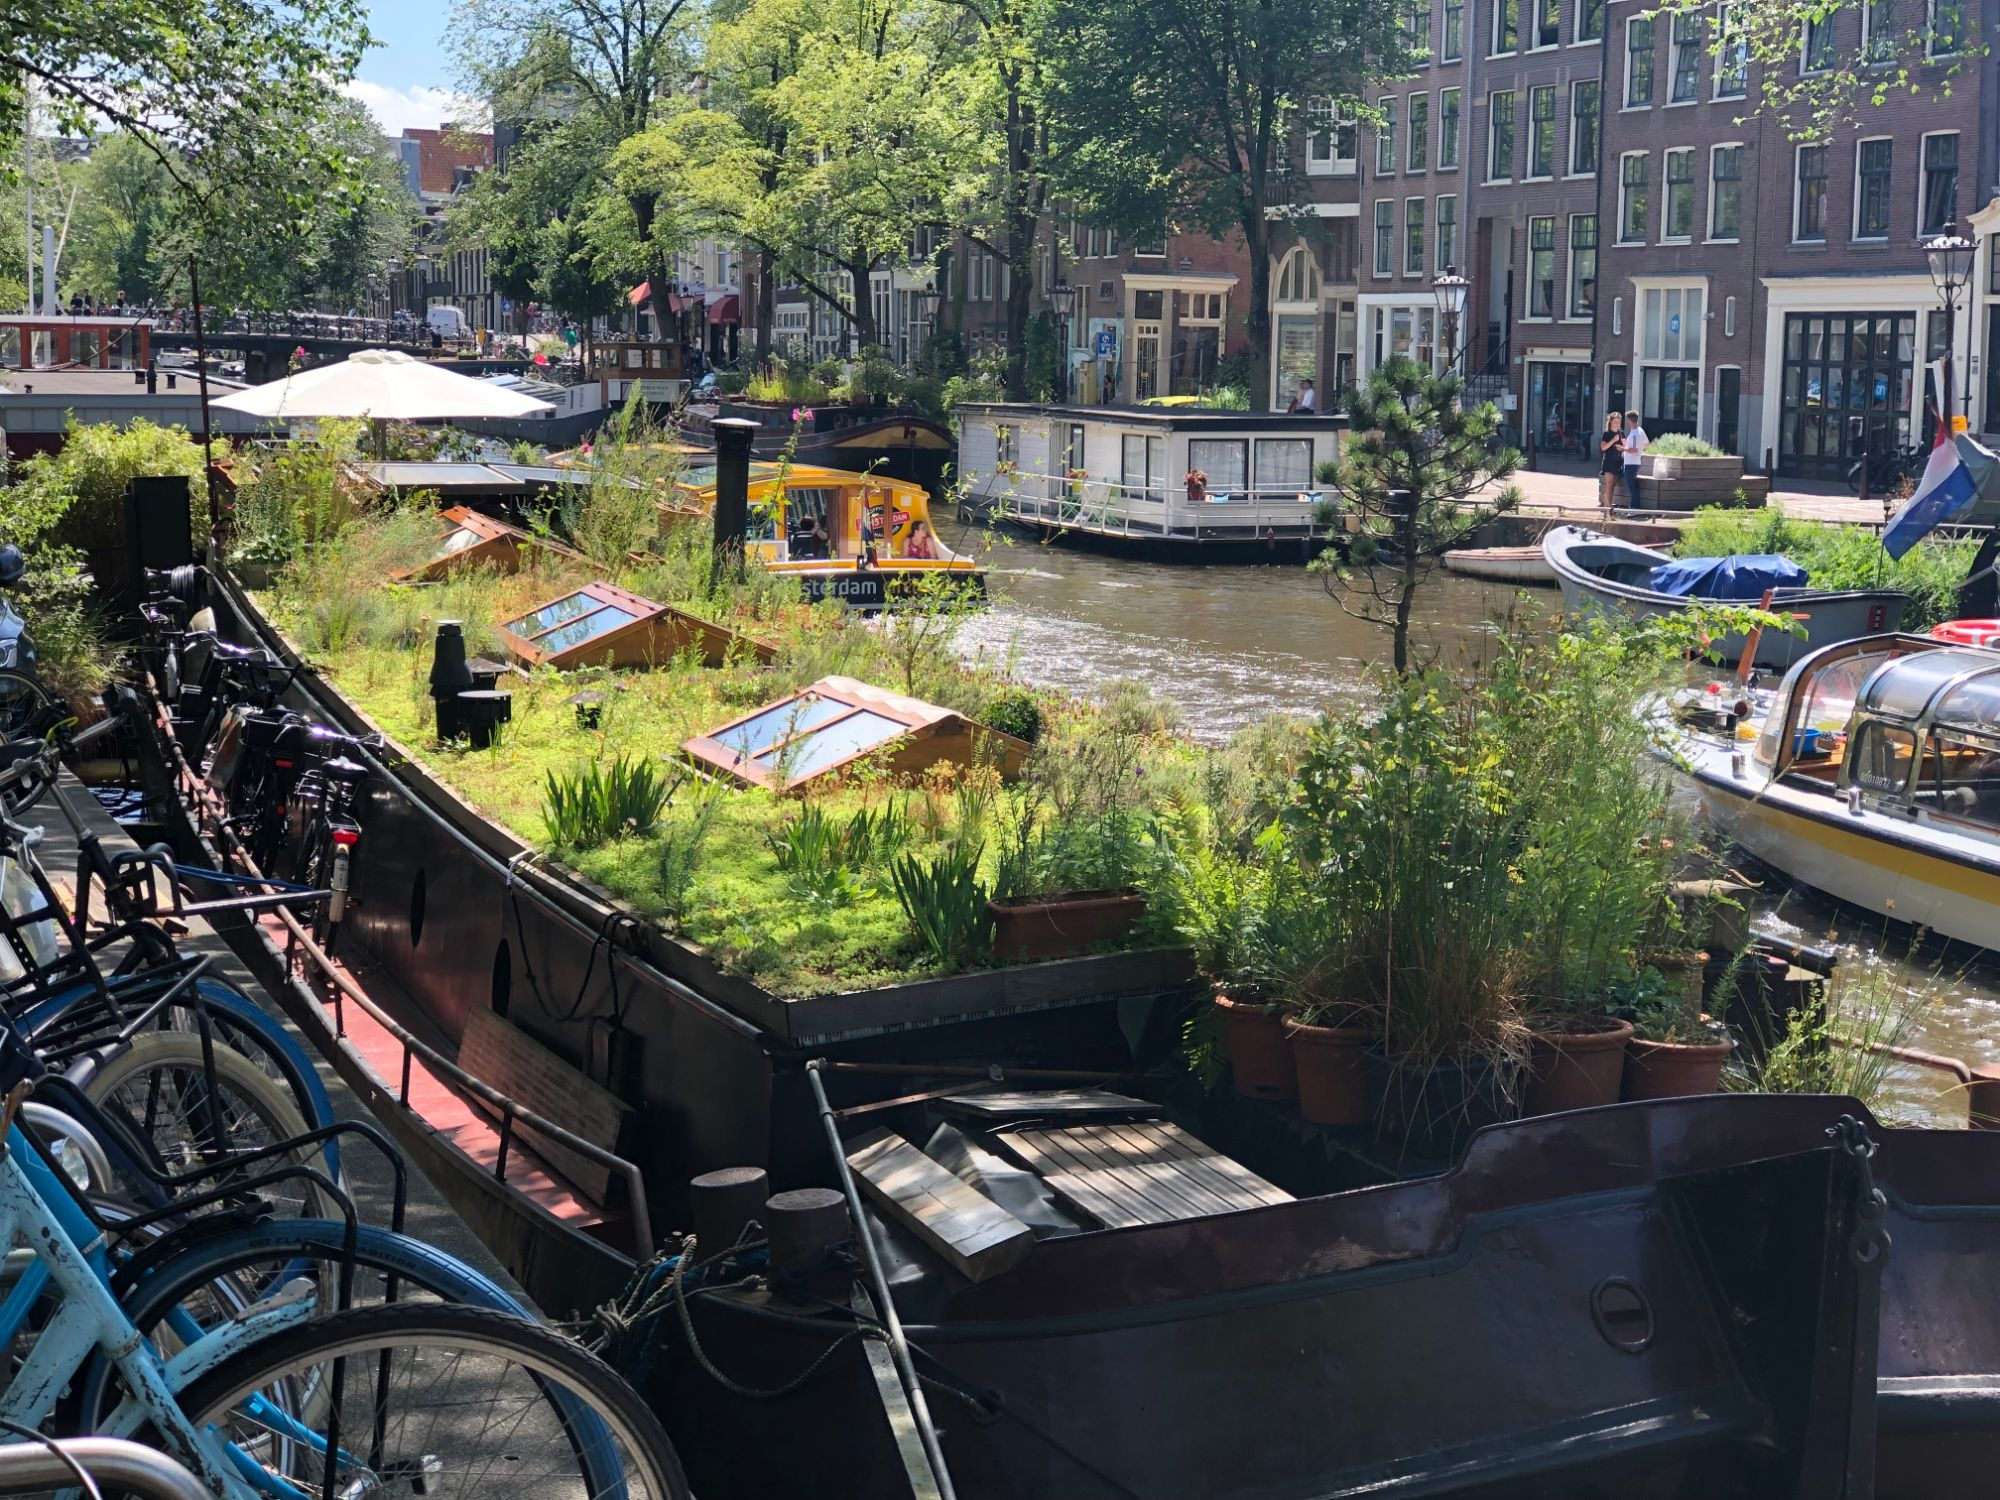 Free stock photo Amsterdam city canal house boat garden